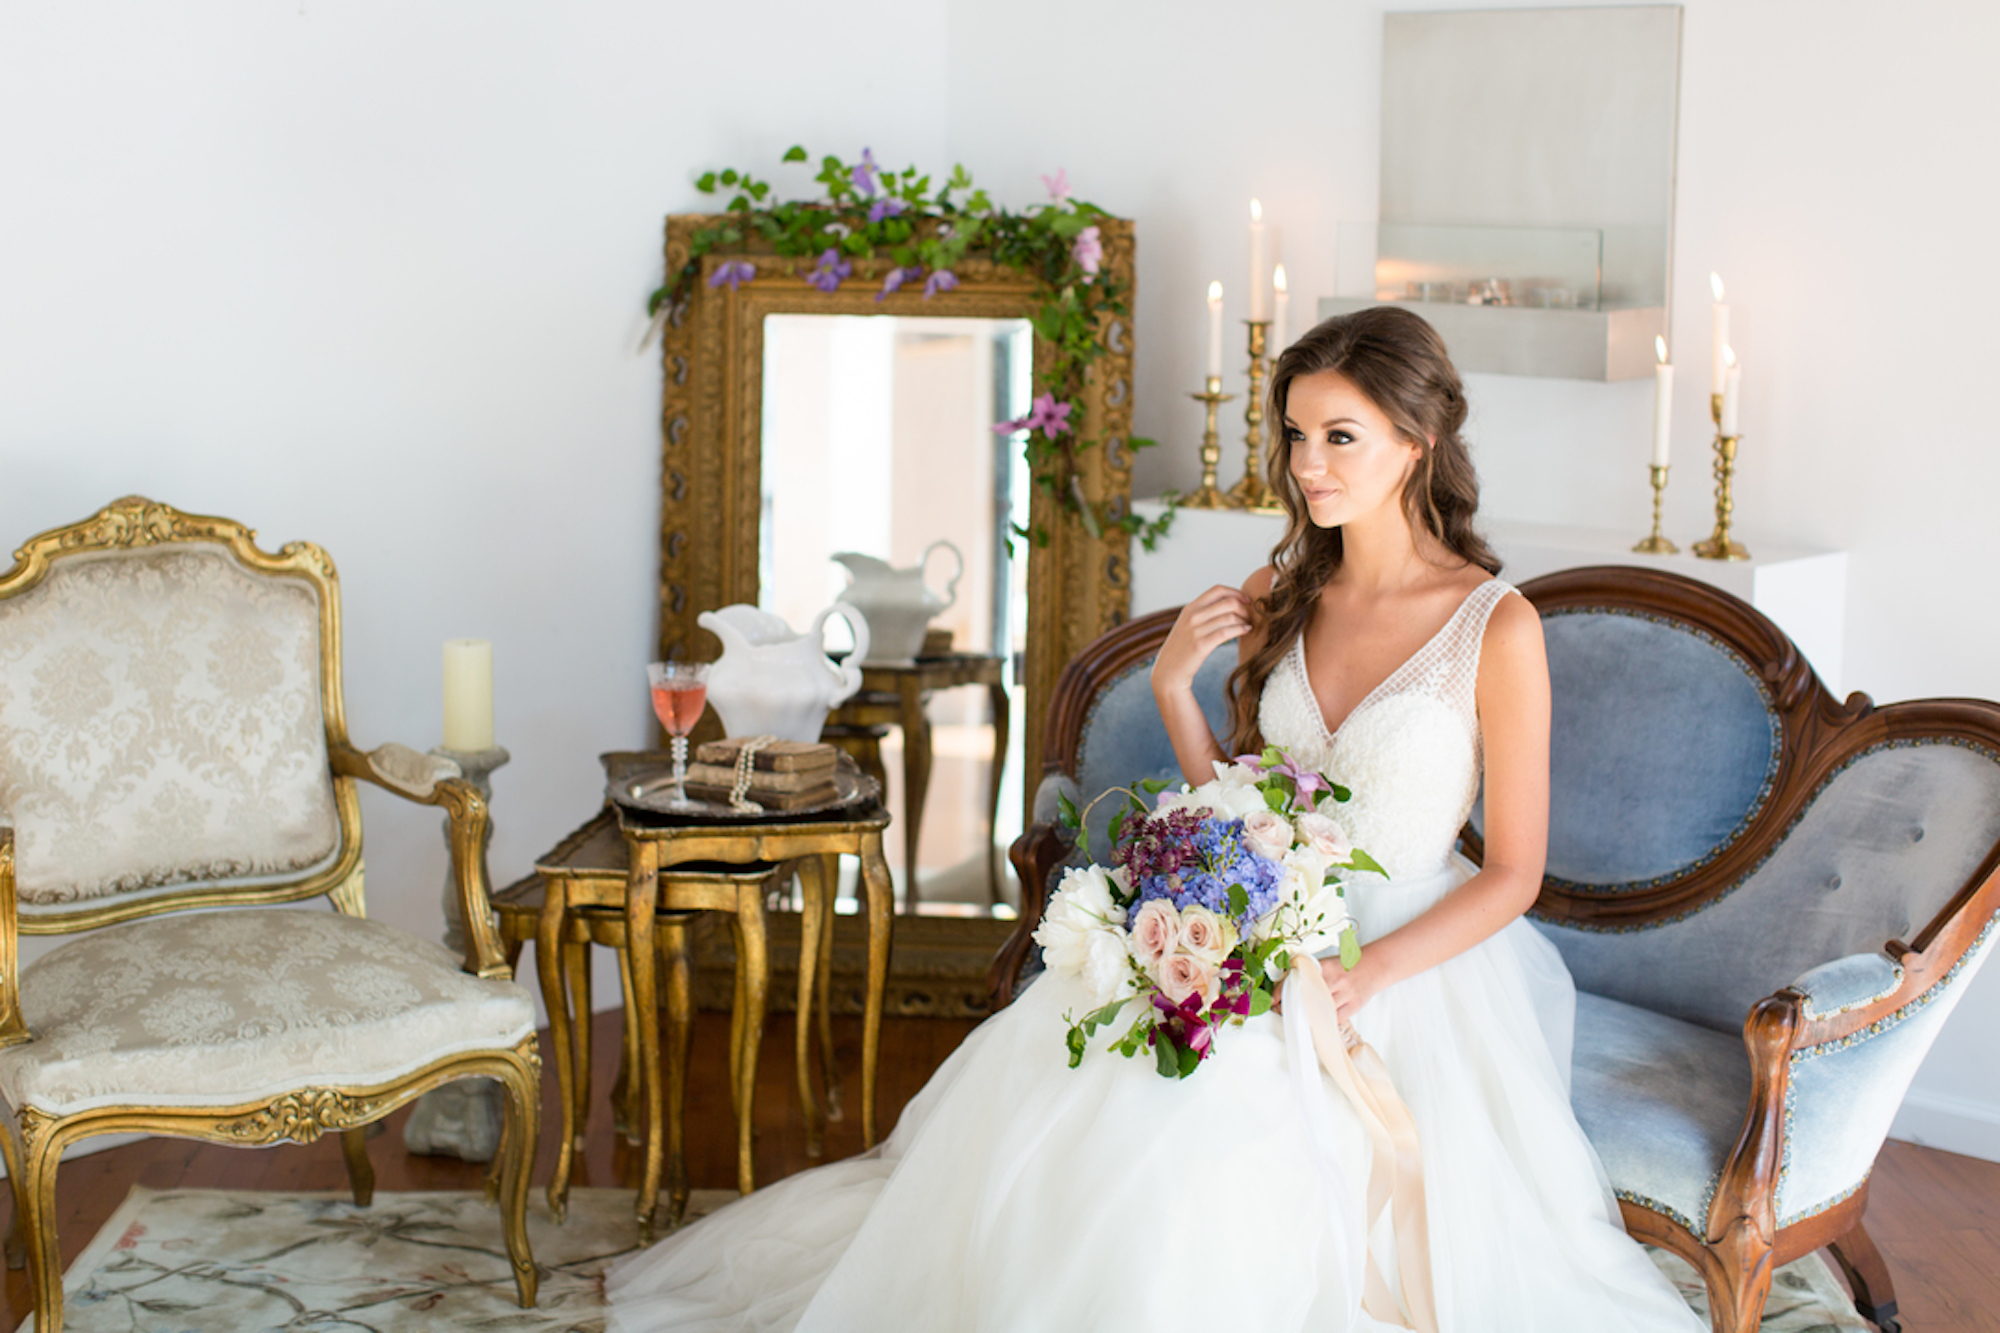 bride holding a bouquet sitting on light blue sofa in bridal suite with mirror in wooden frame in background